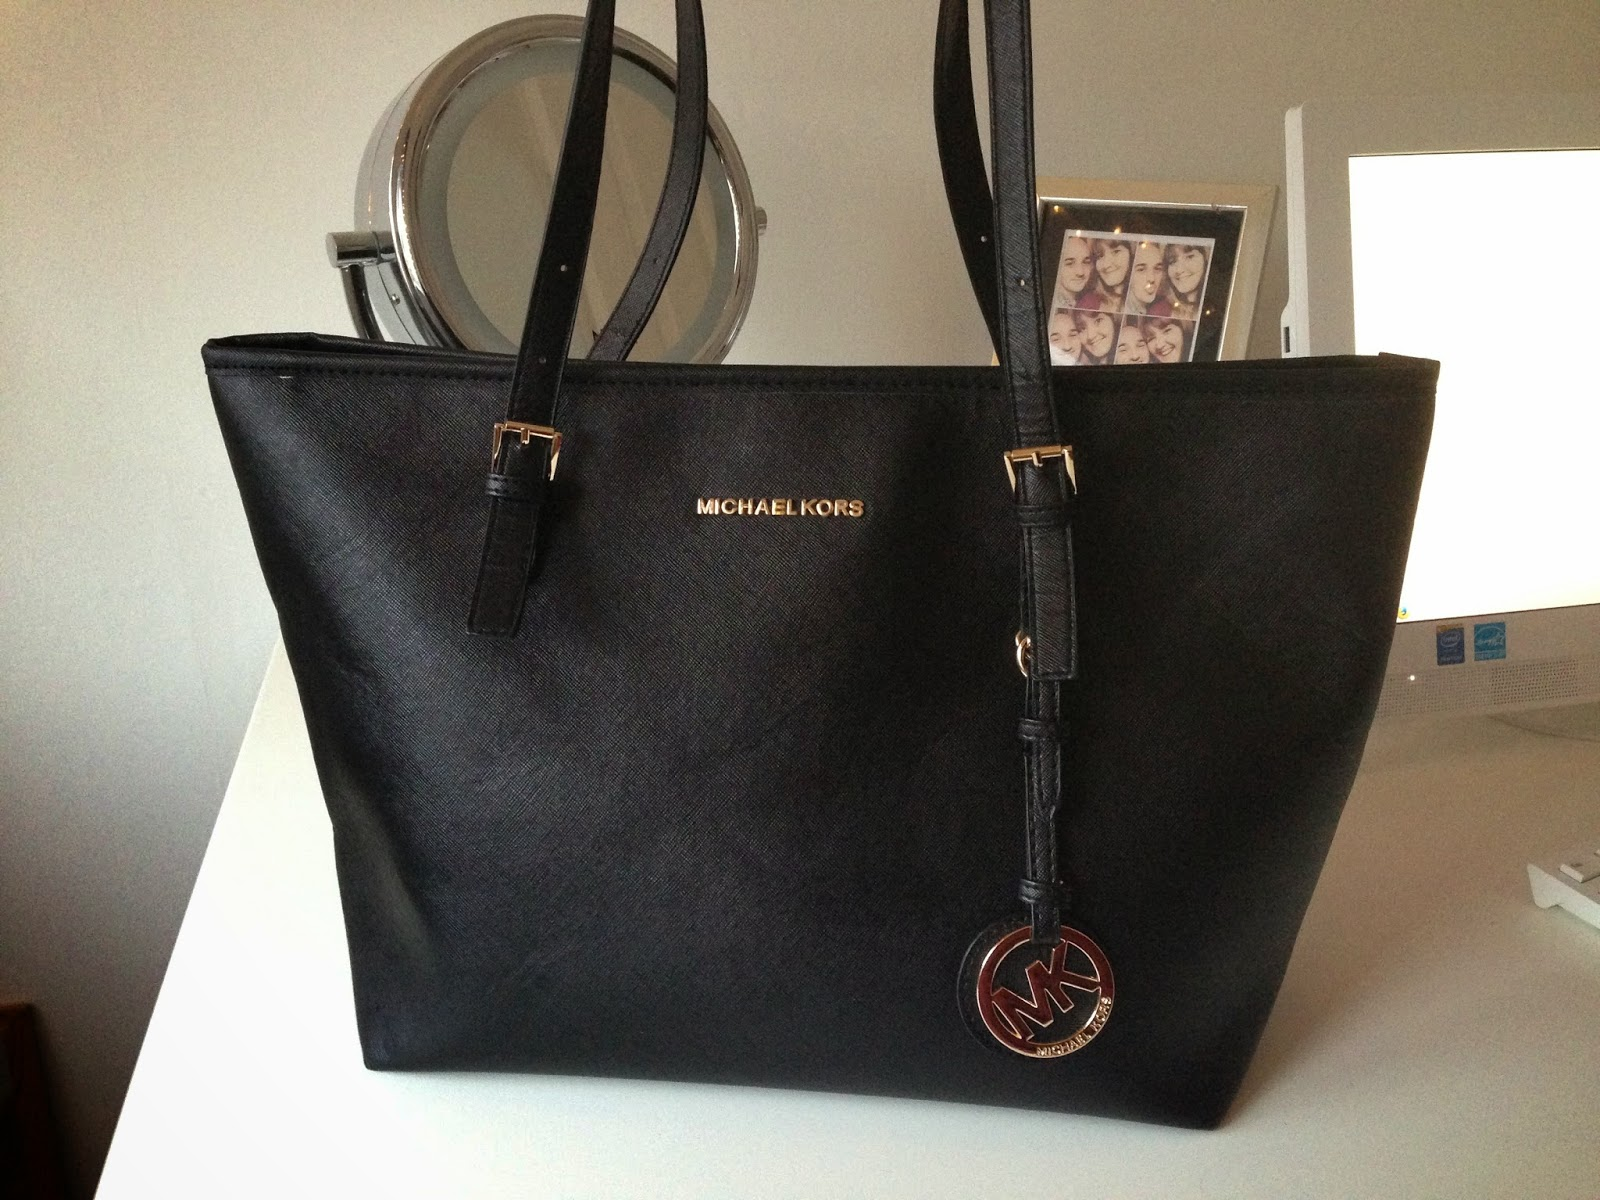 fdf20423951236 Michael Kors Bag | $22.98. I LOVE this bag! When I ordered this bag I  didn't expect much and I actually regretted it as soon as the order went  through but ...